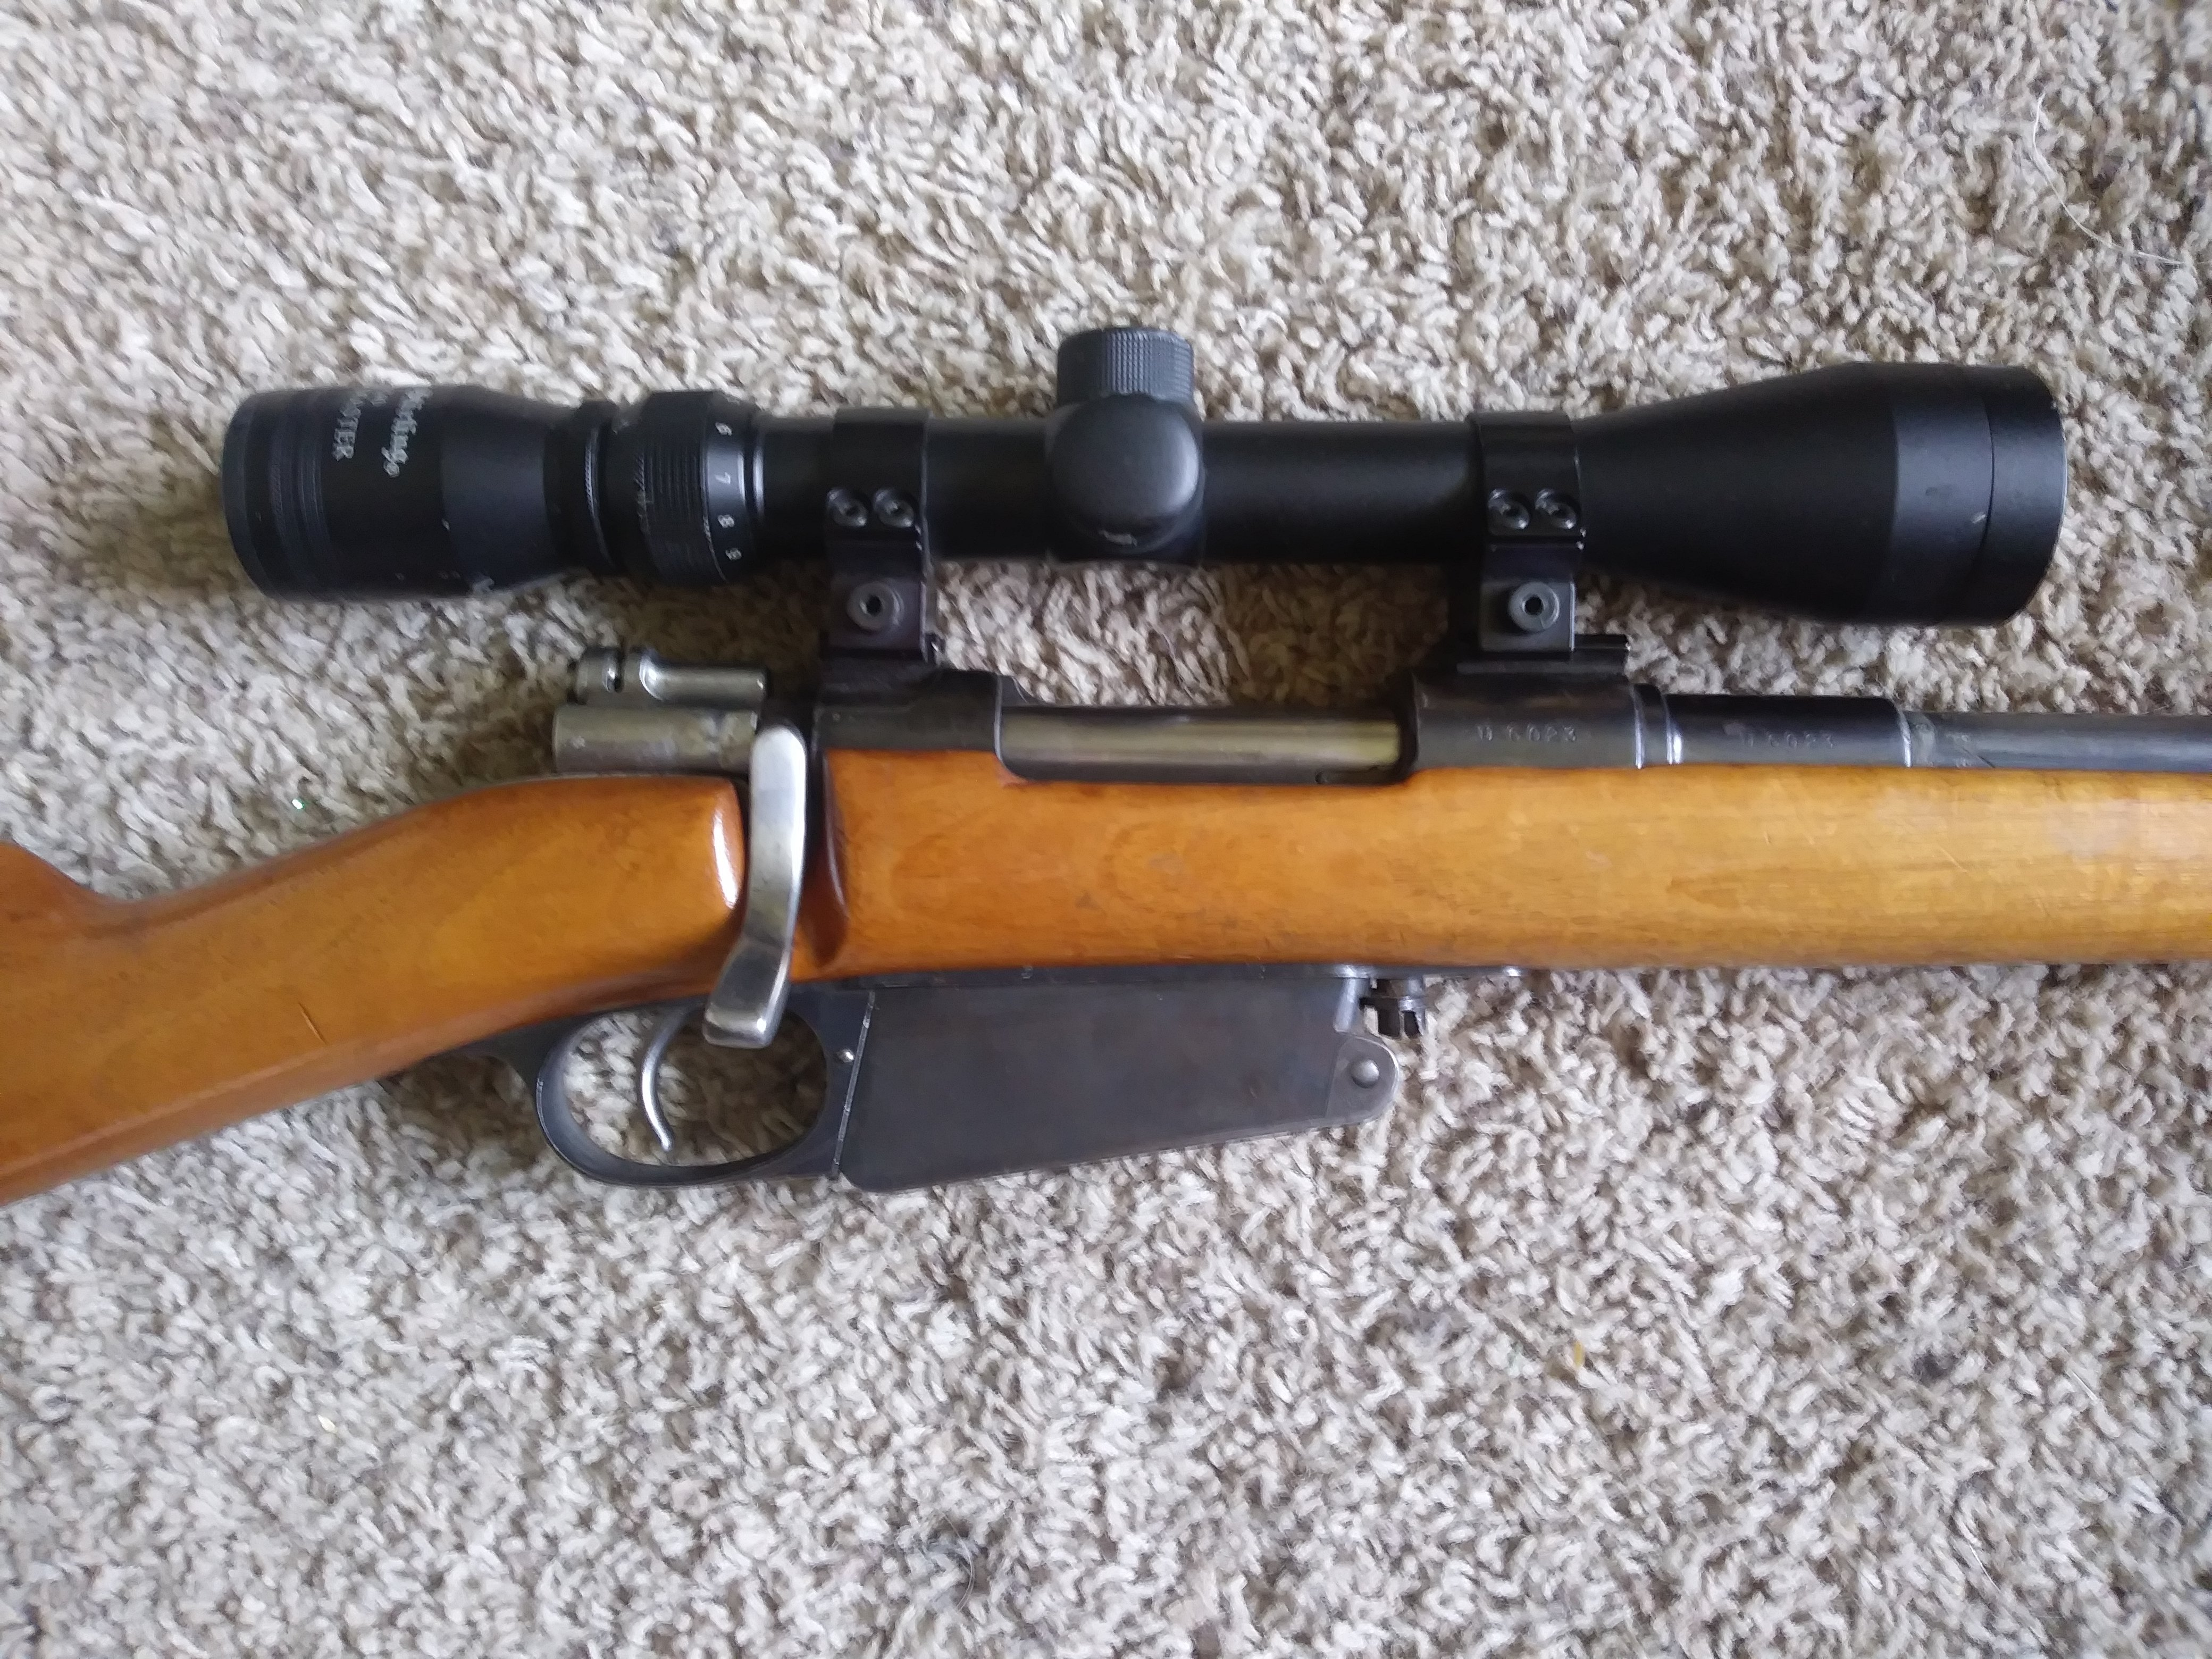 My new 1891 Mauser in 7 65x53 Argentine | Gun and Game - The